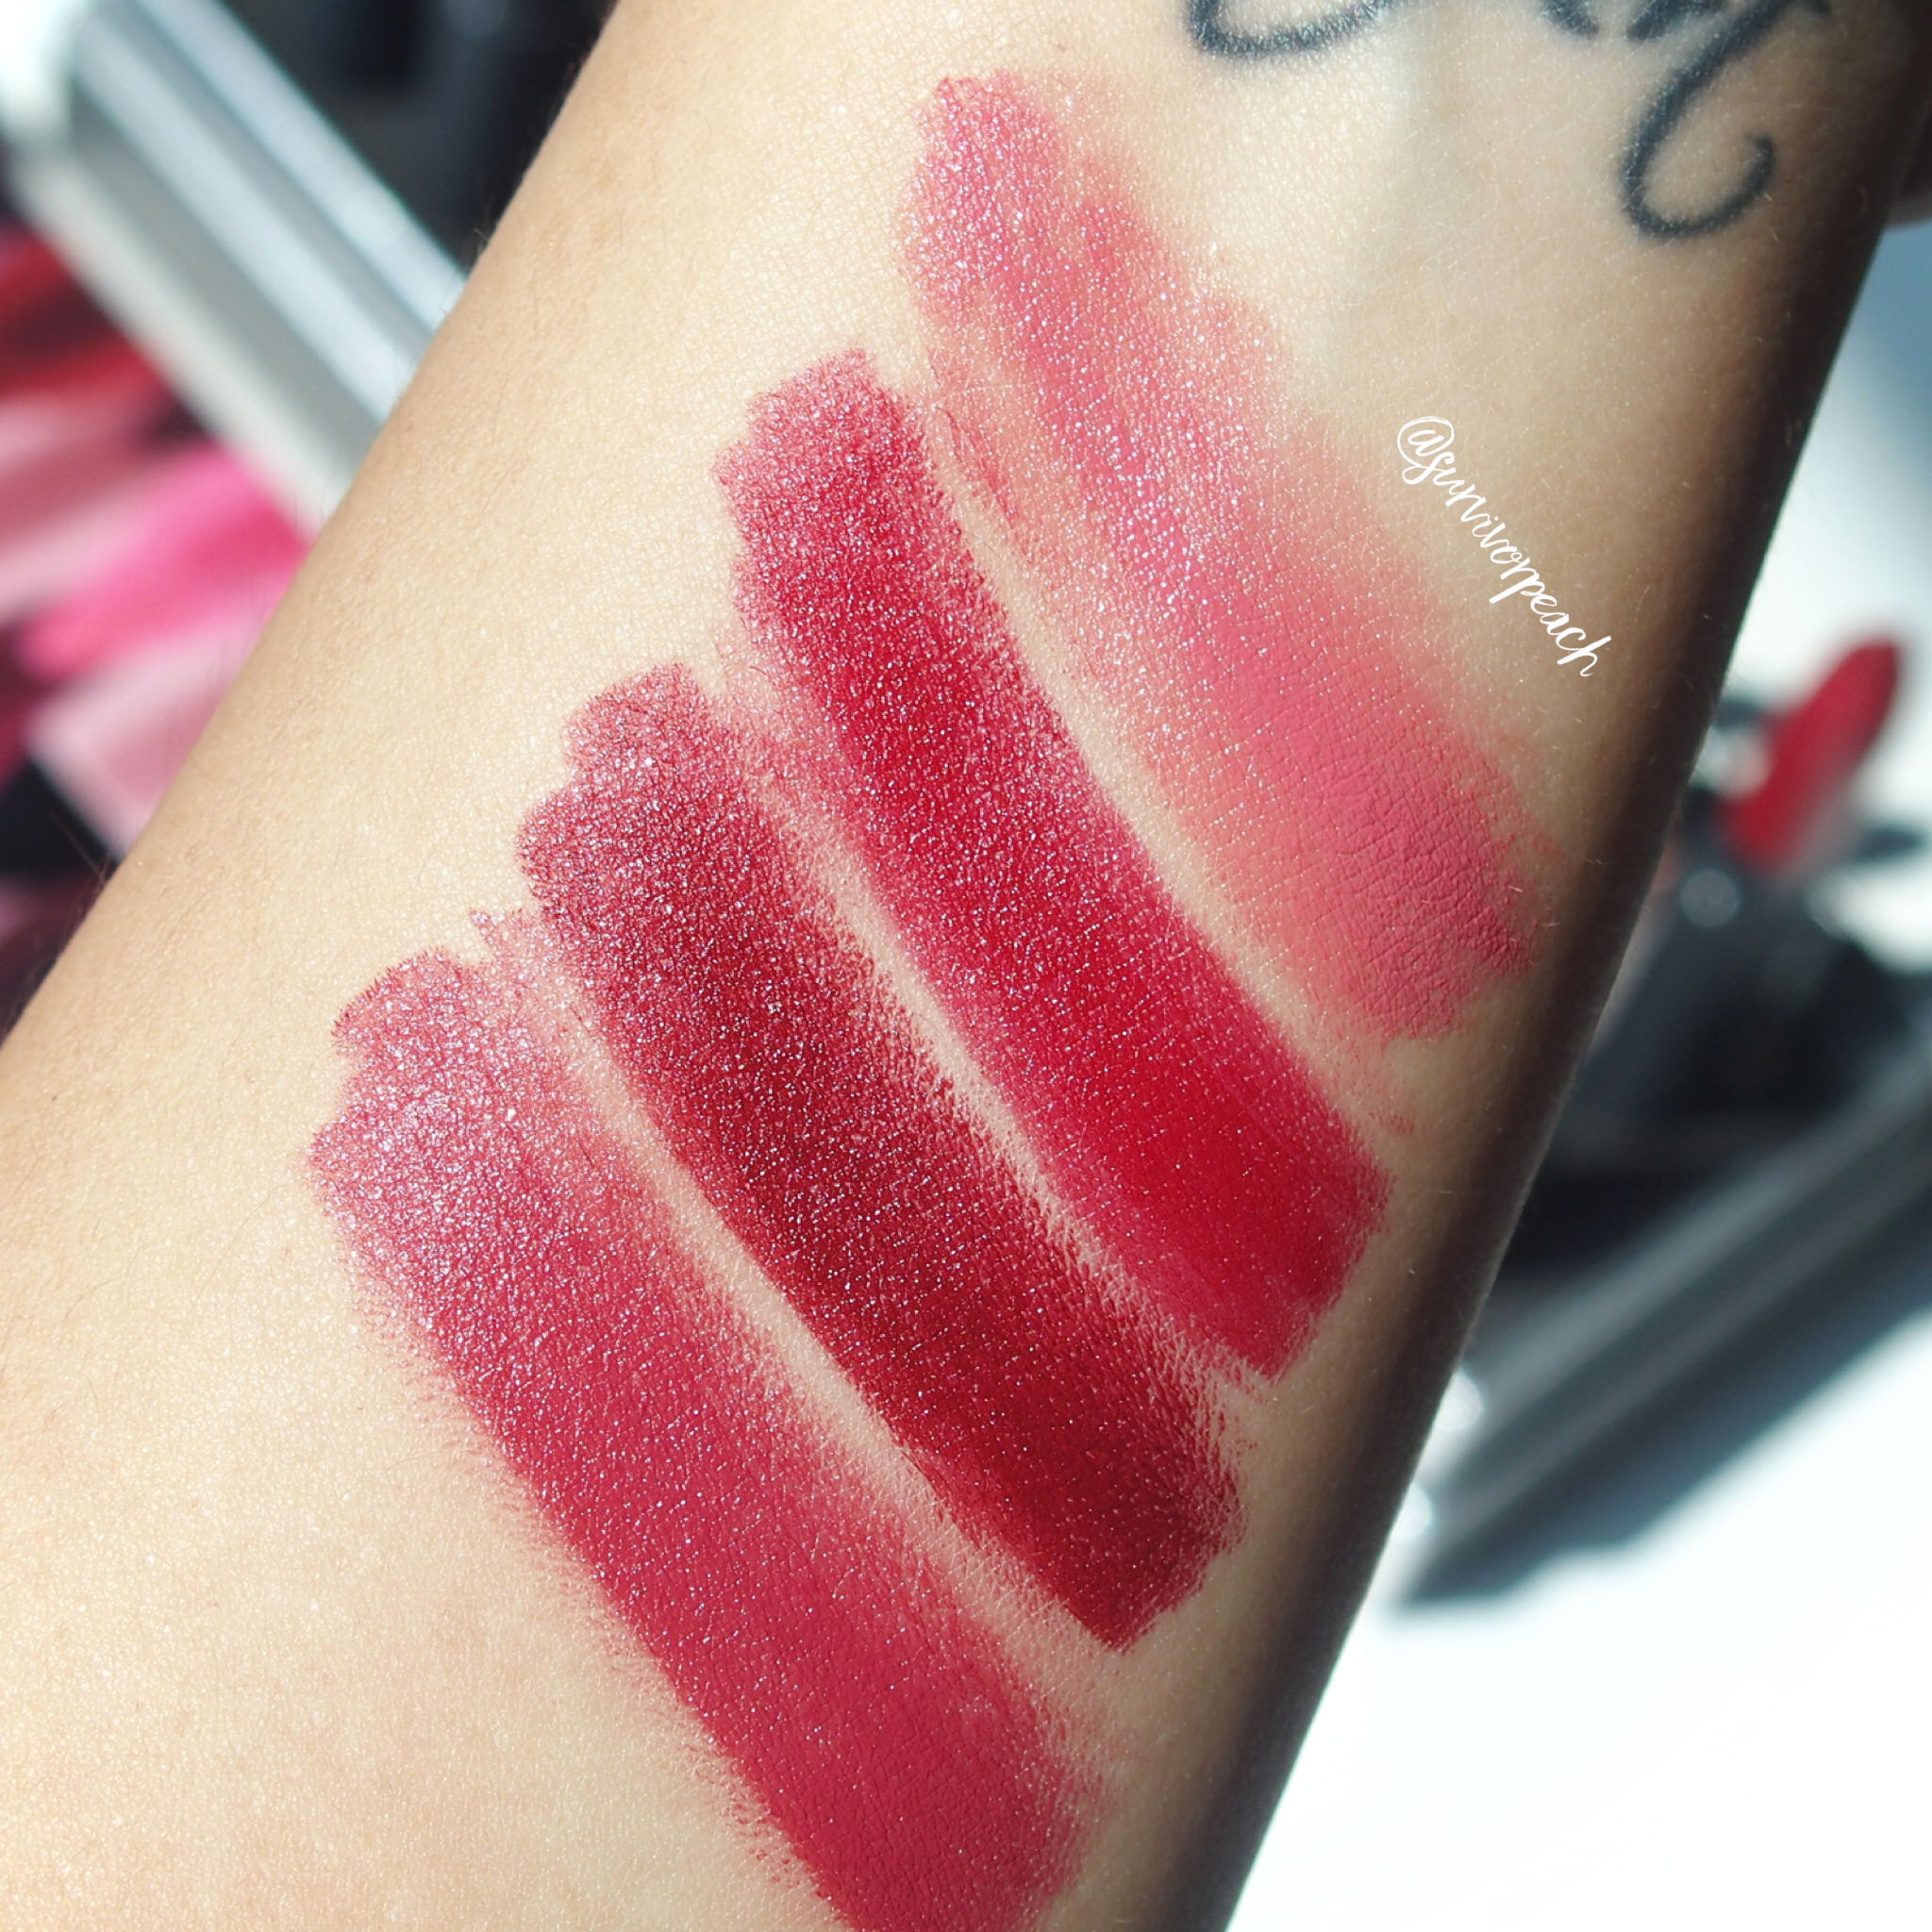 Swatches of the Bite Beauty Matte Creme Lip Crayon in shades Tatin, Red Velvet, Liquorice, Brandy